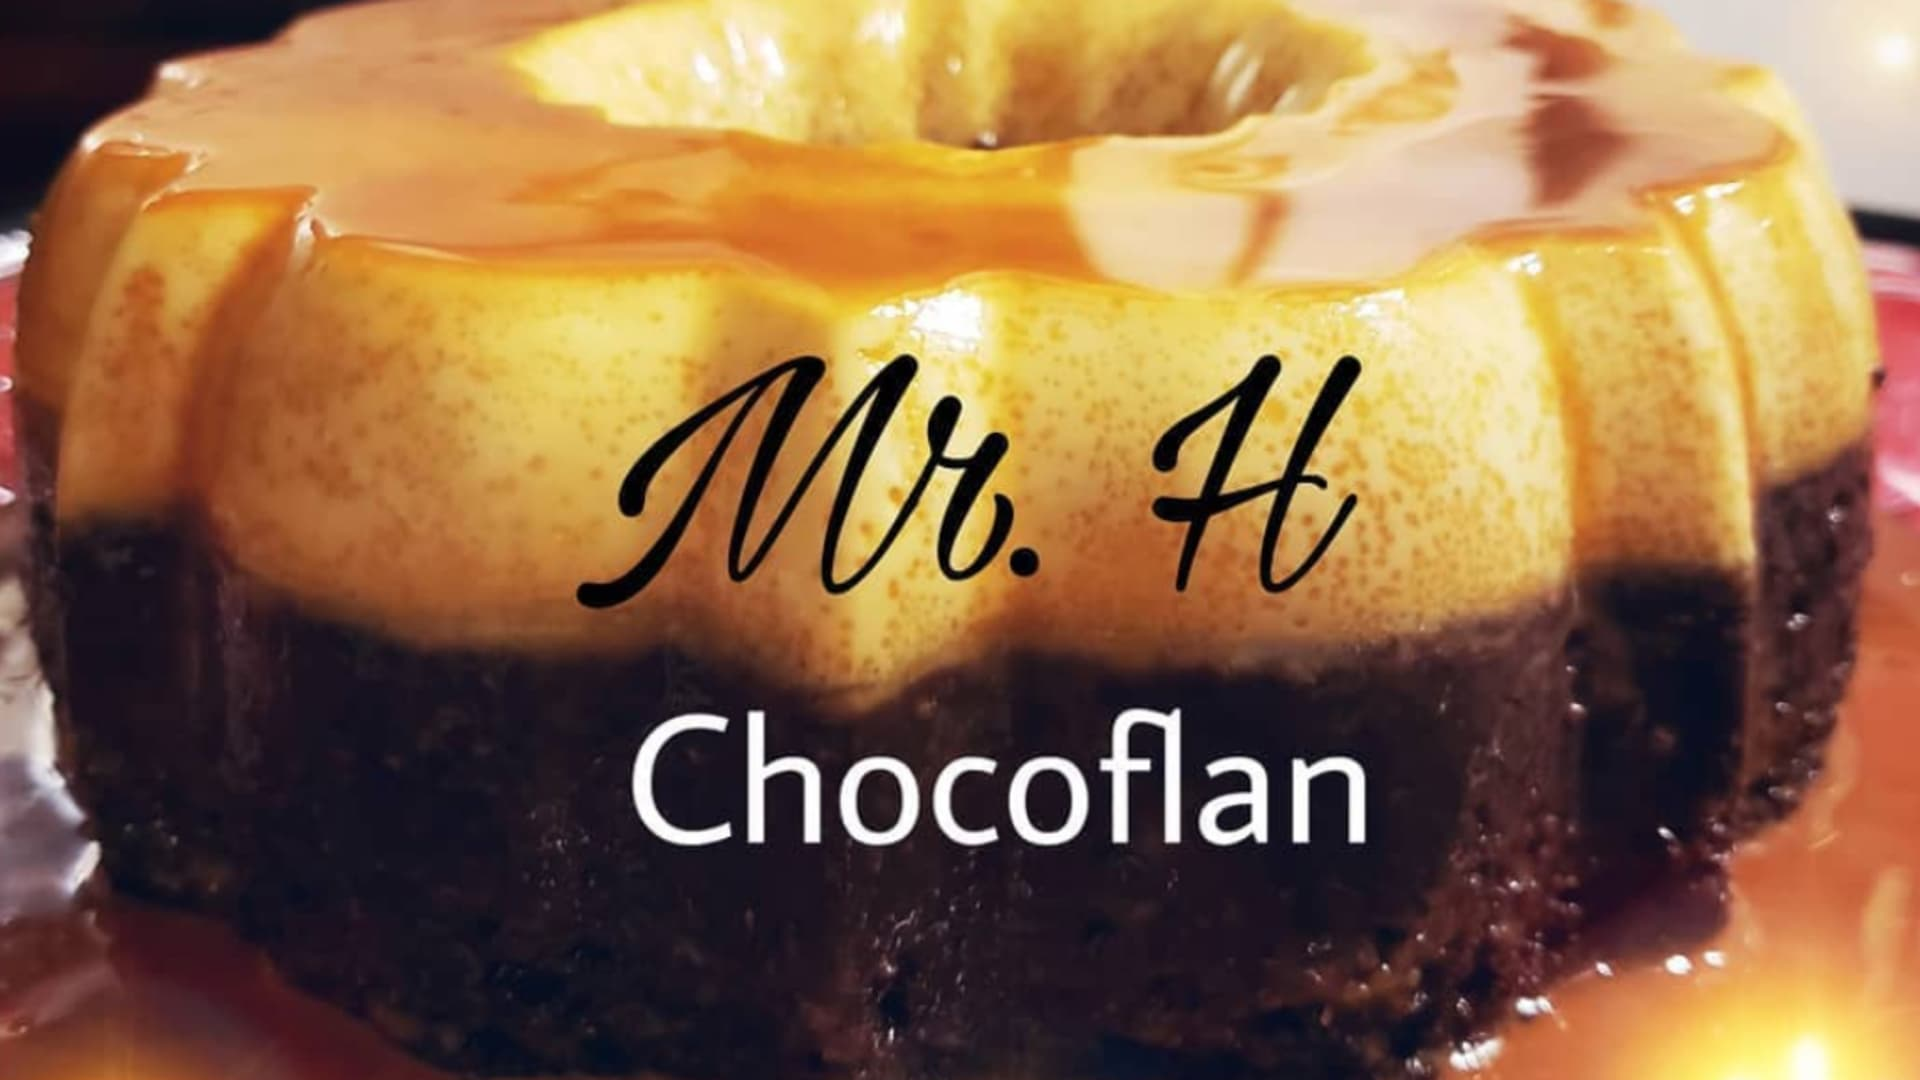 Anna Flores and Higinio Garcia were able to start a baking business, Mr. H Chocoflan, in part due to the payment pause.